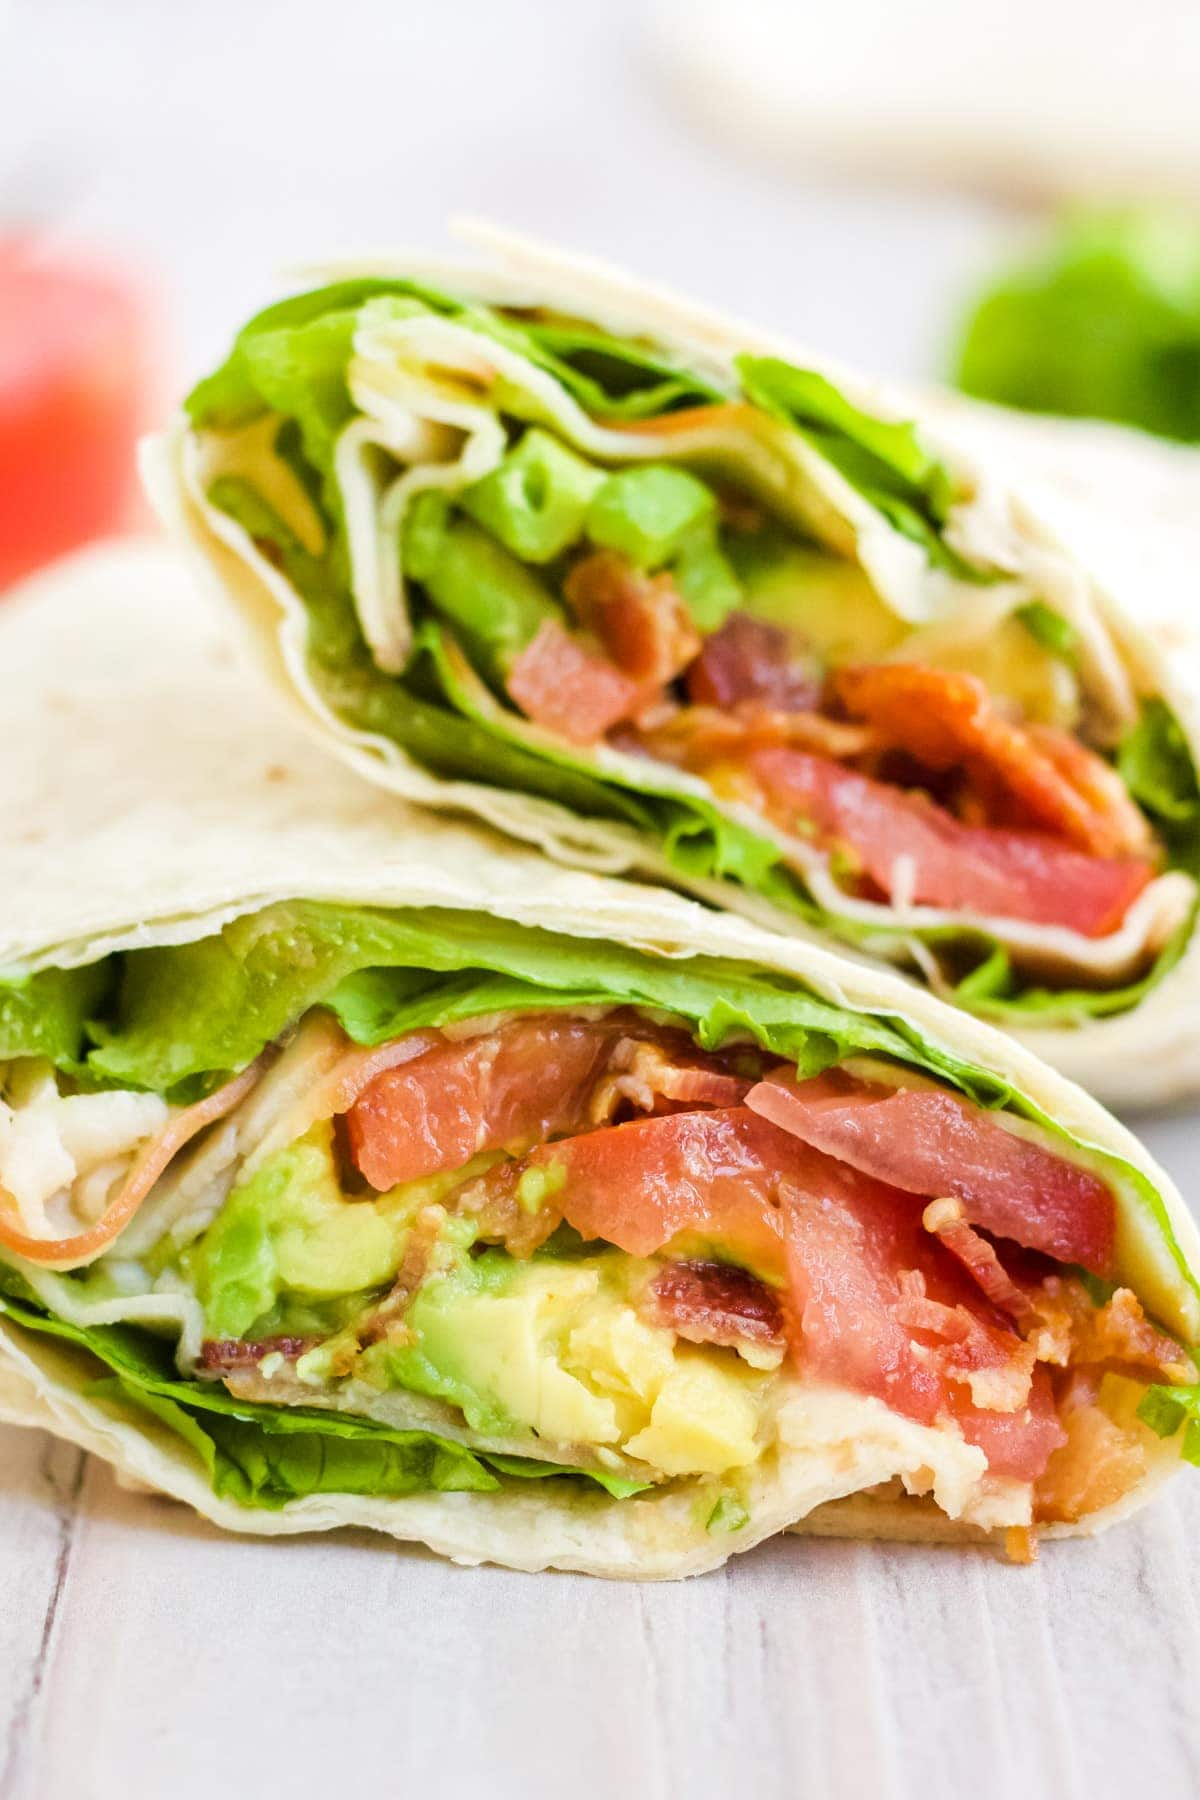 A close up image of a finished turkey BLT wrap